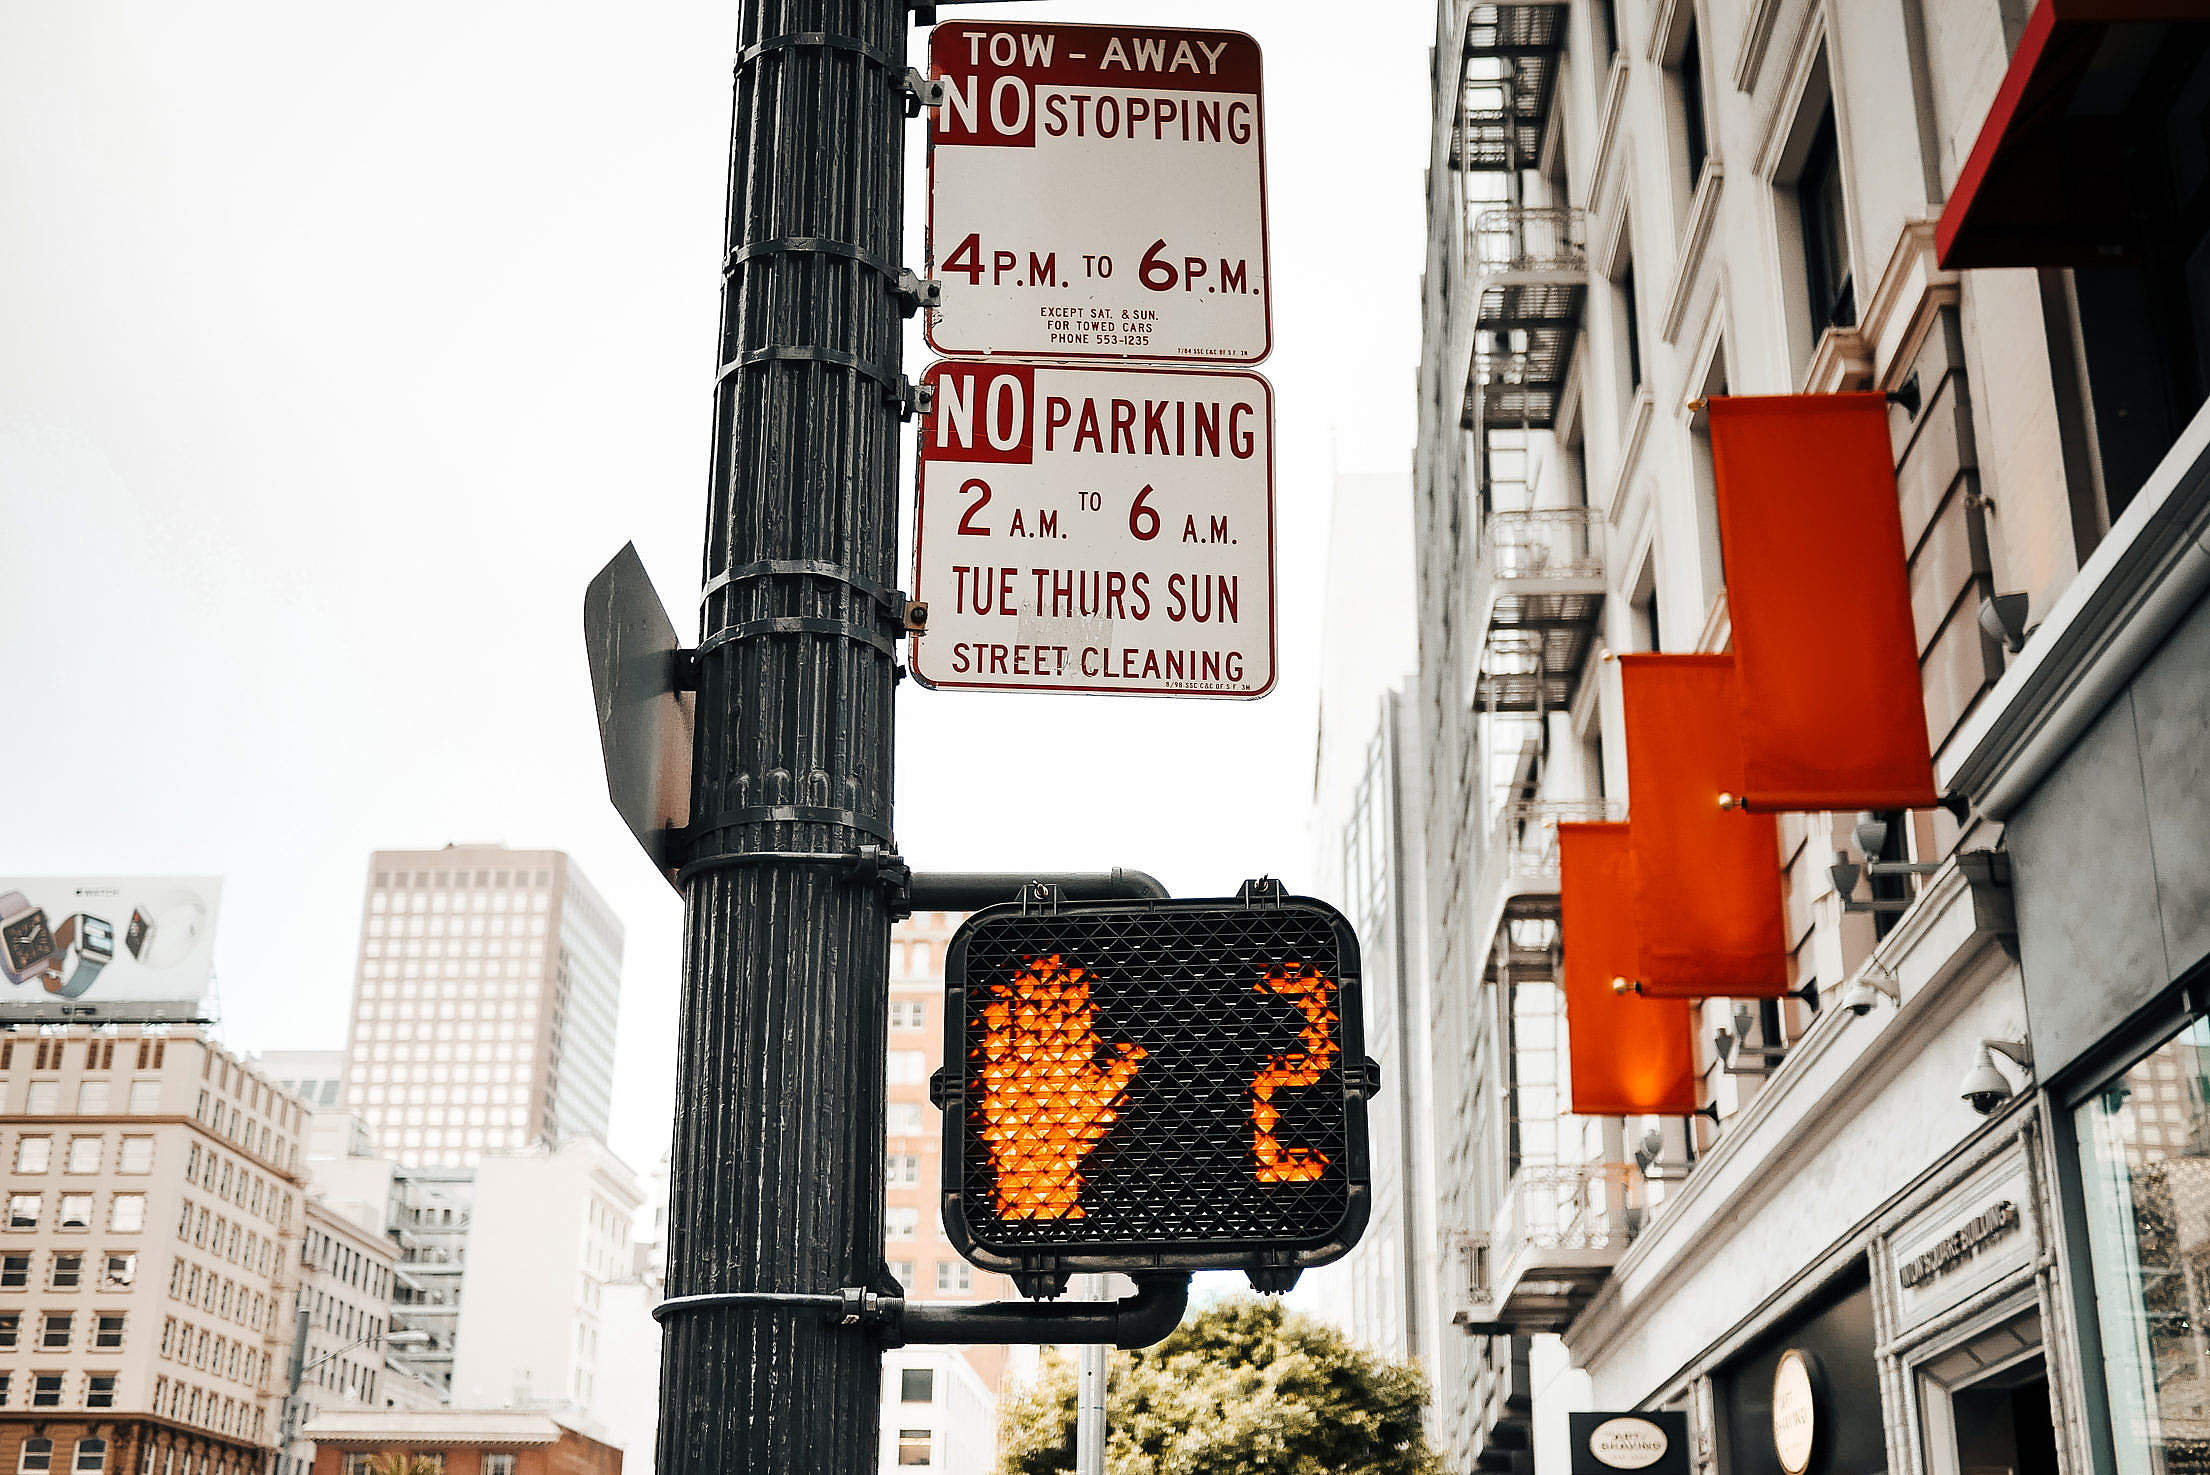 Typical Pedestrian Red Traffic Lights Countdown in California Free Stock Photo